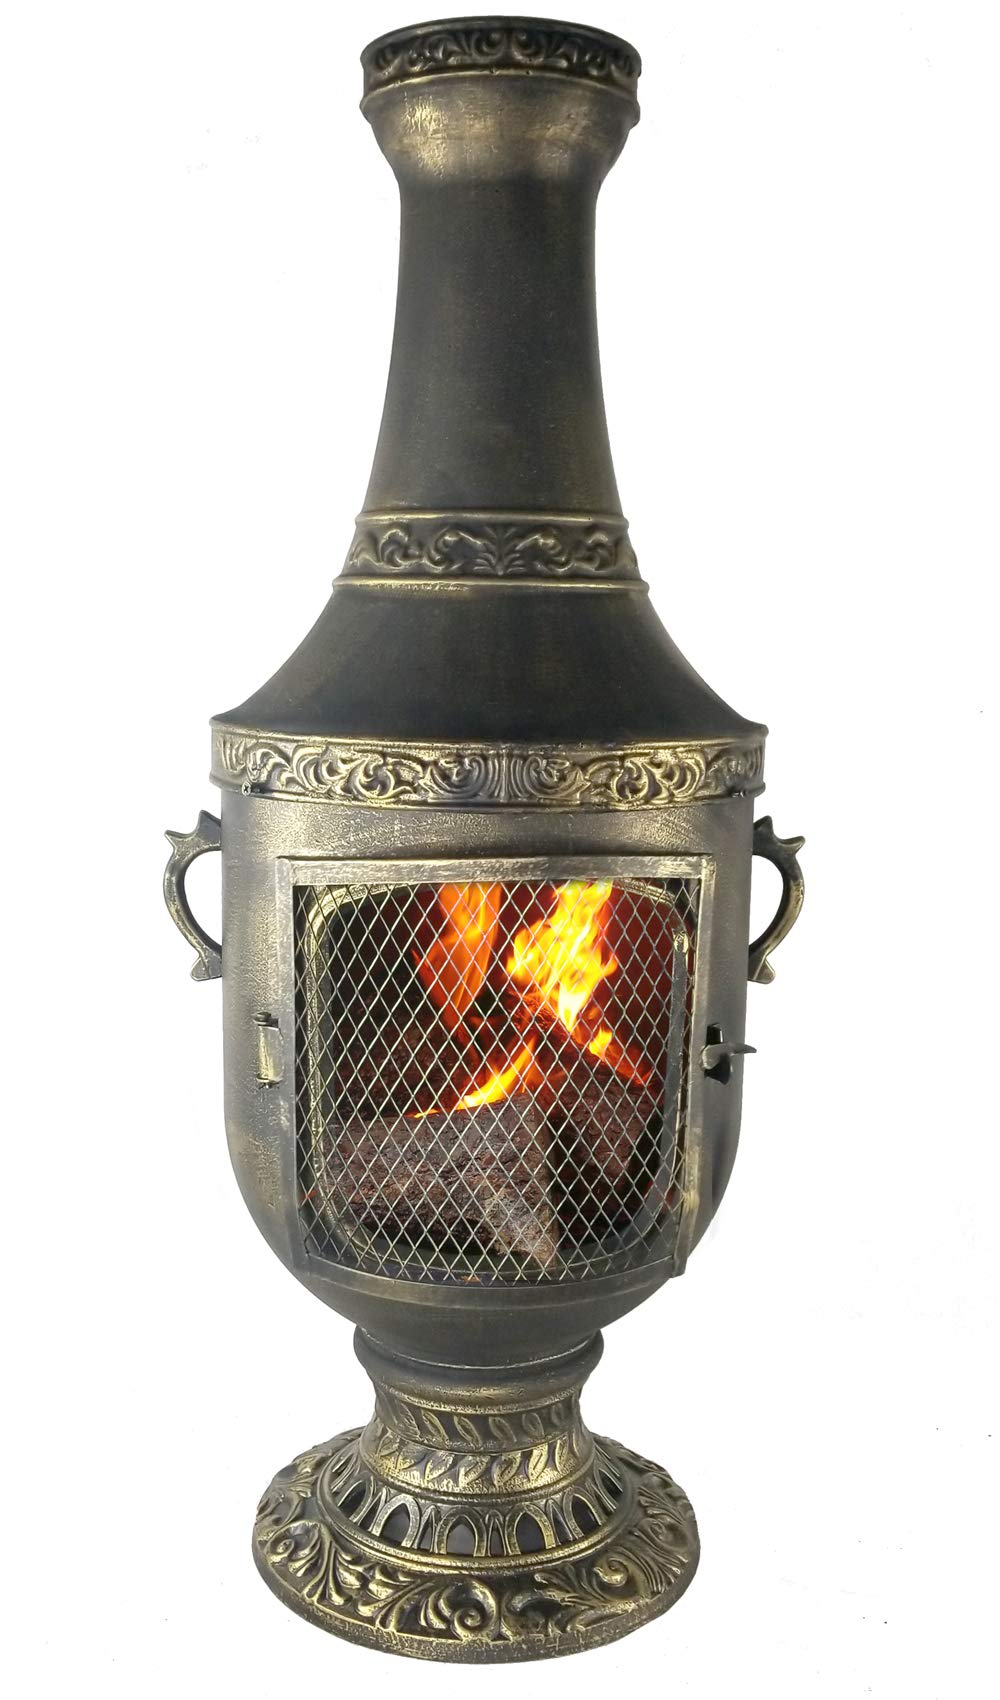 The Blue Rooster CAST Aluminum Venetian Chiminea with Gas and a 10' Hose in Gold Accent. Also Comes with a Free Year Round Cover. by The Blue Rooster